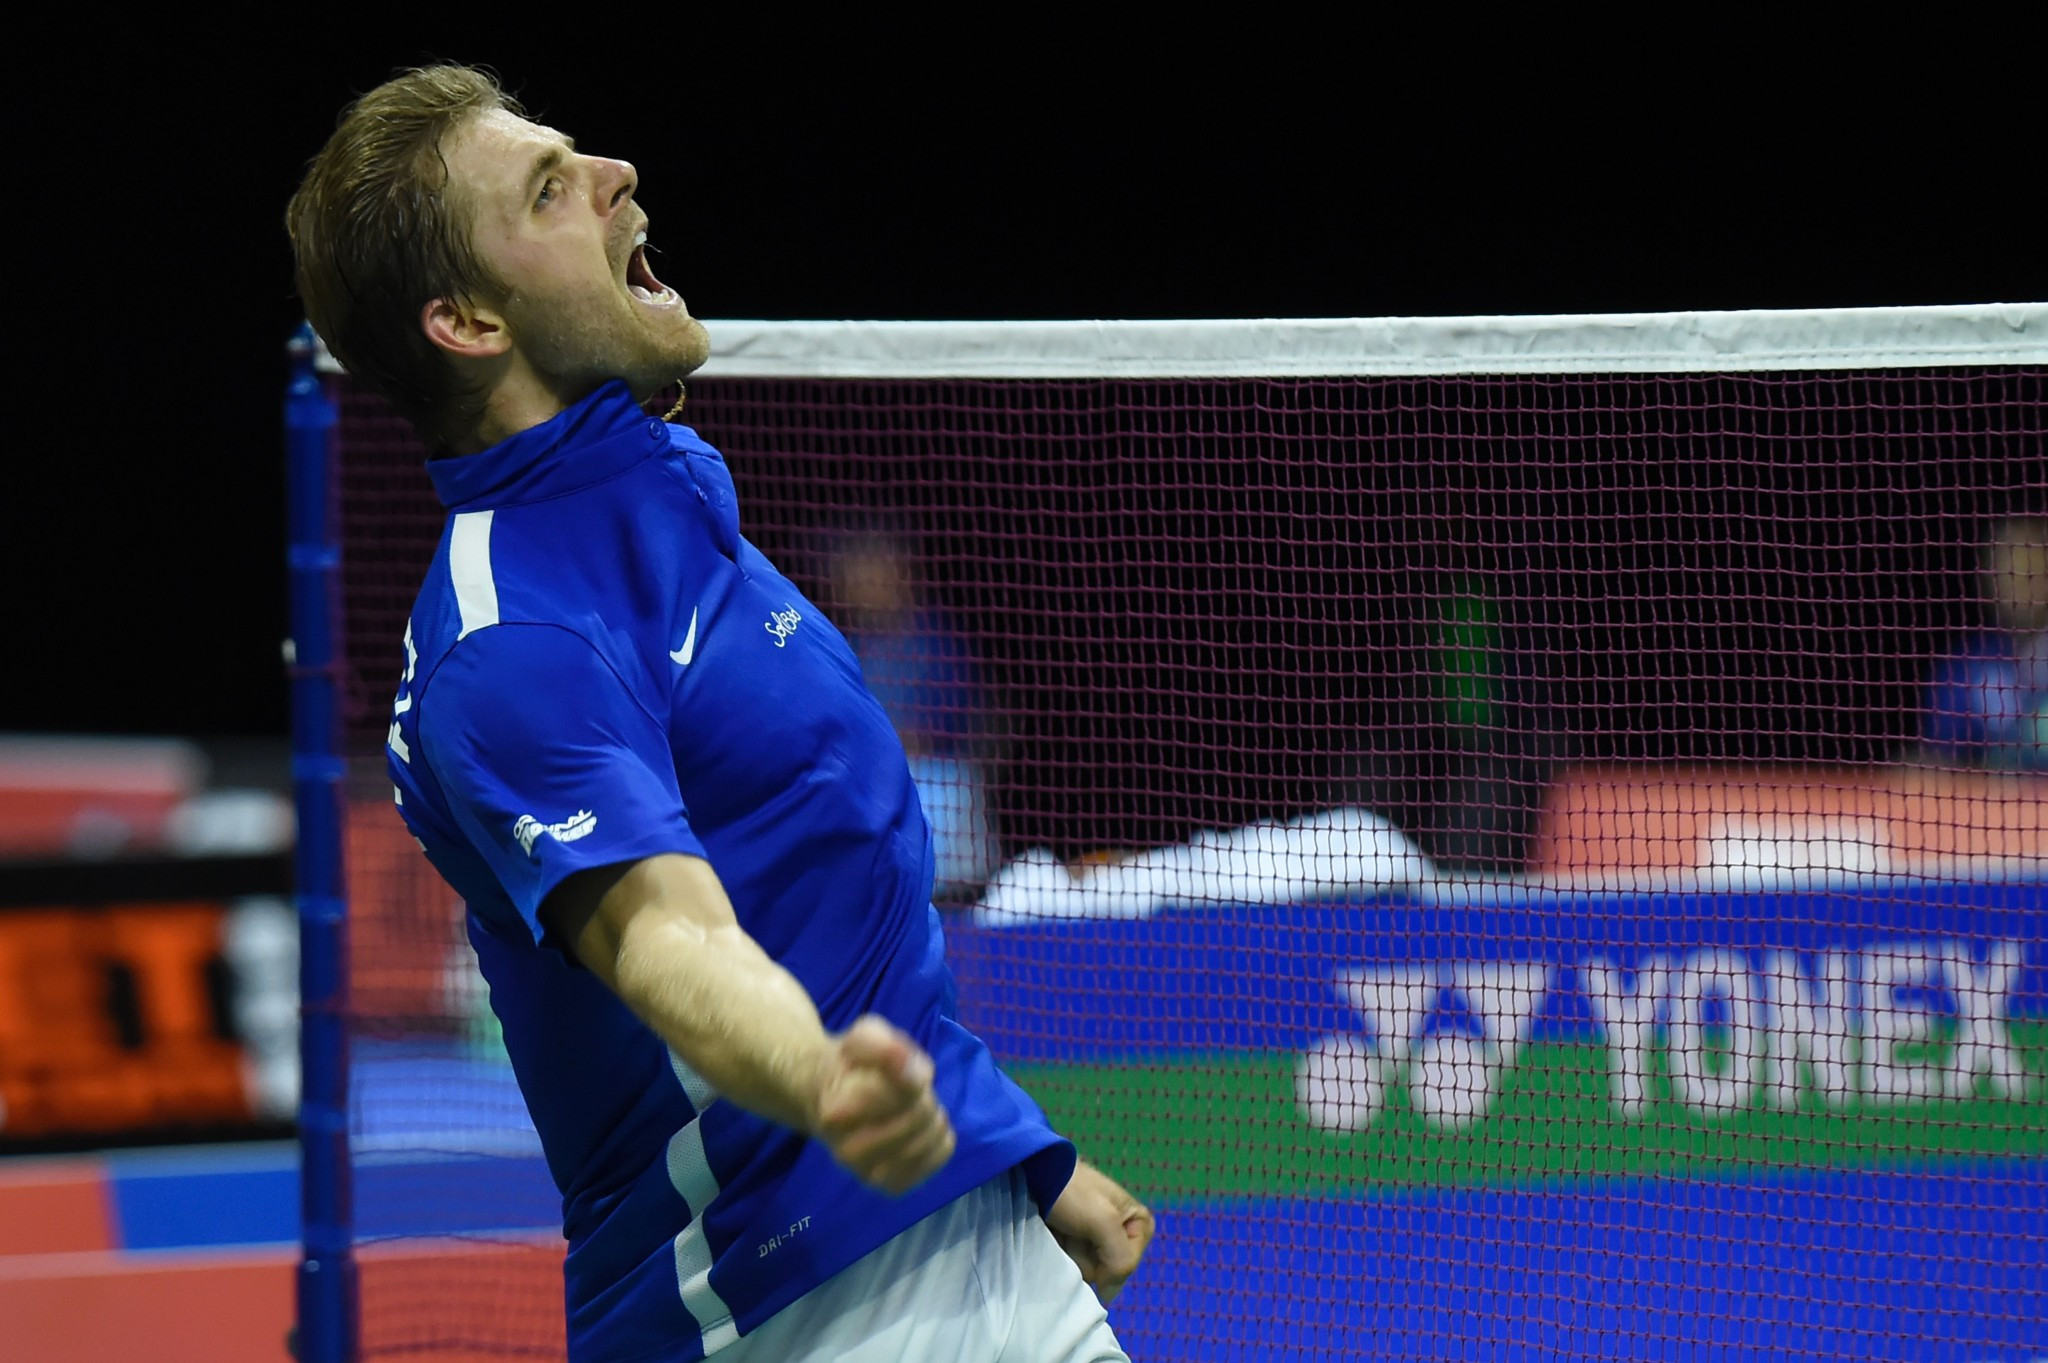 Lee stunned by Leverdez at BWF World Championships